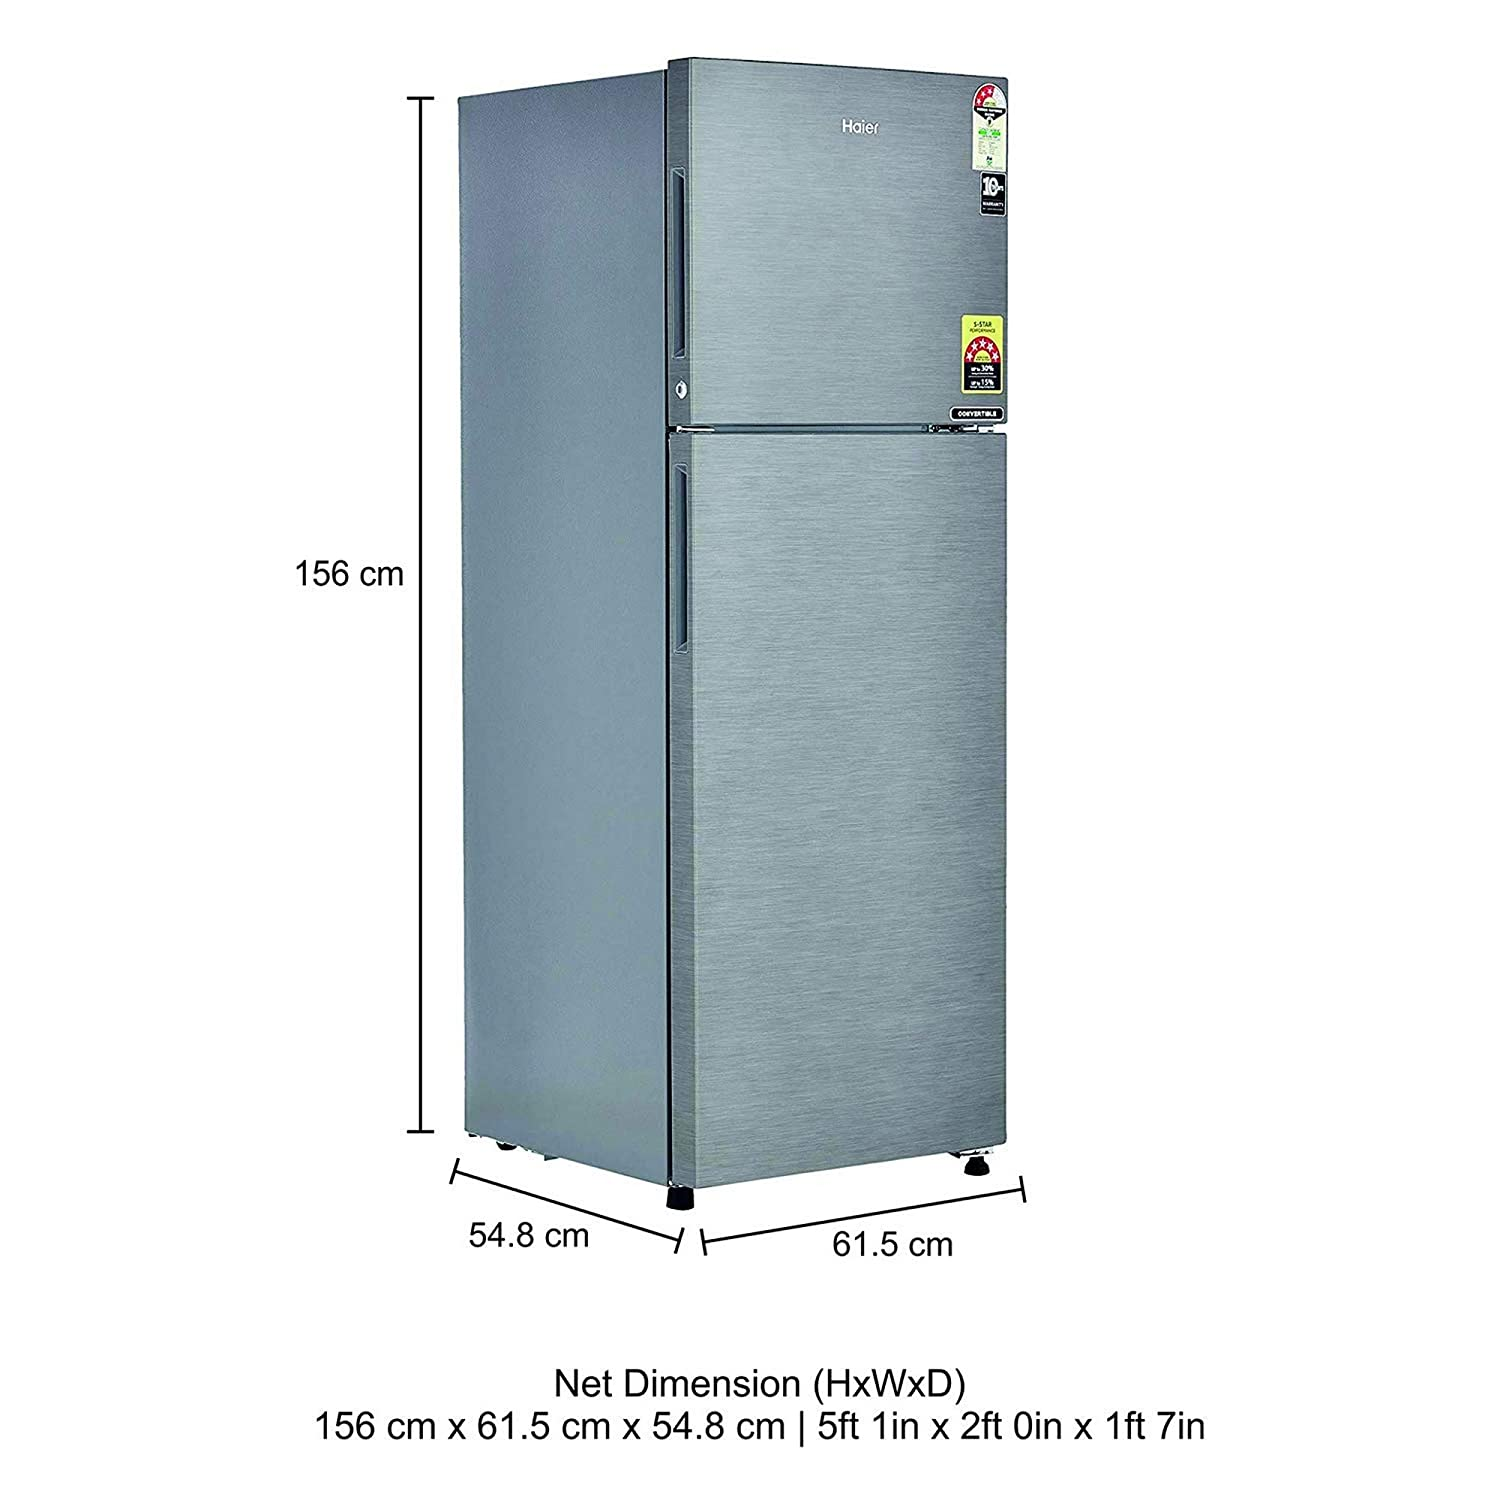 Haier 258 L 3 Star Frost Free Double Door Refrigeratorhef 25tds Dazzle Guard Diamond Coating Steel Brushline Silver Convertible Home Kitchen